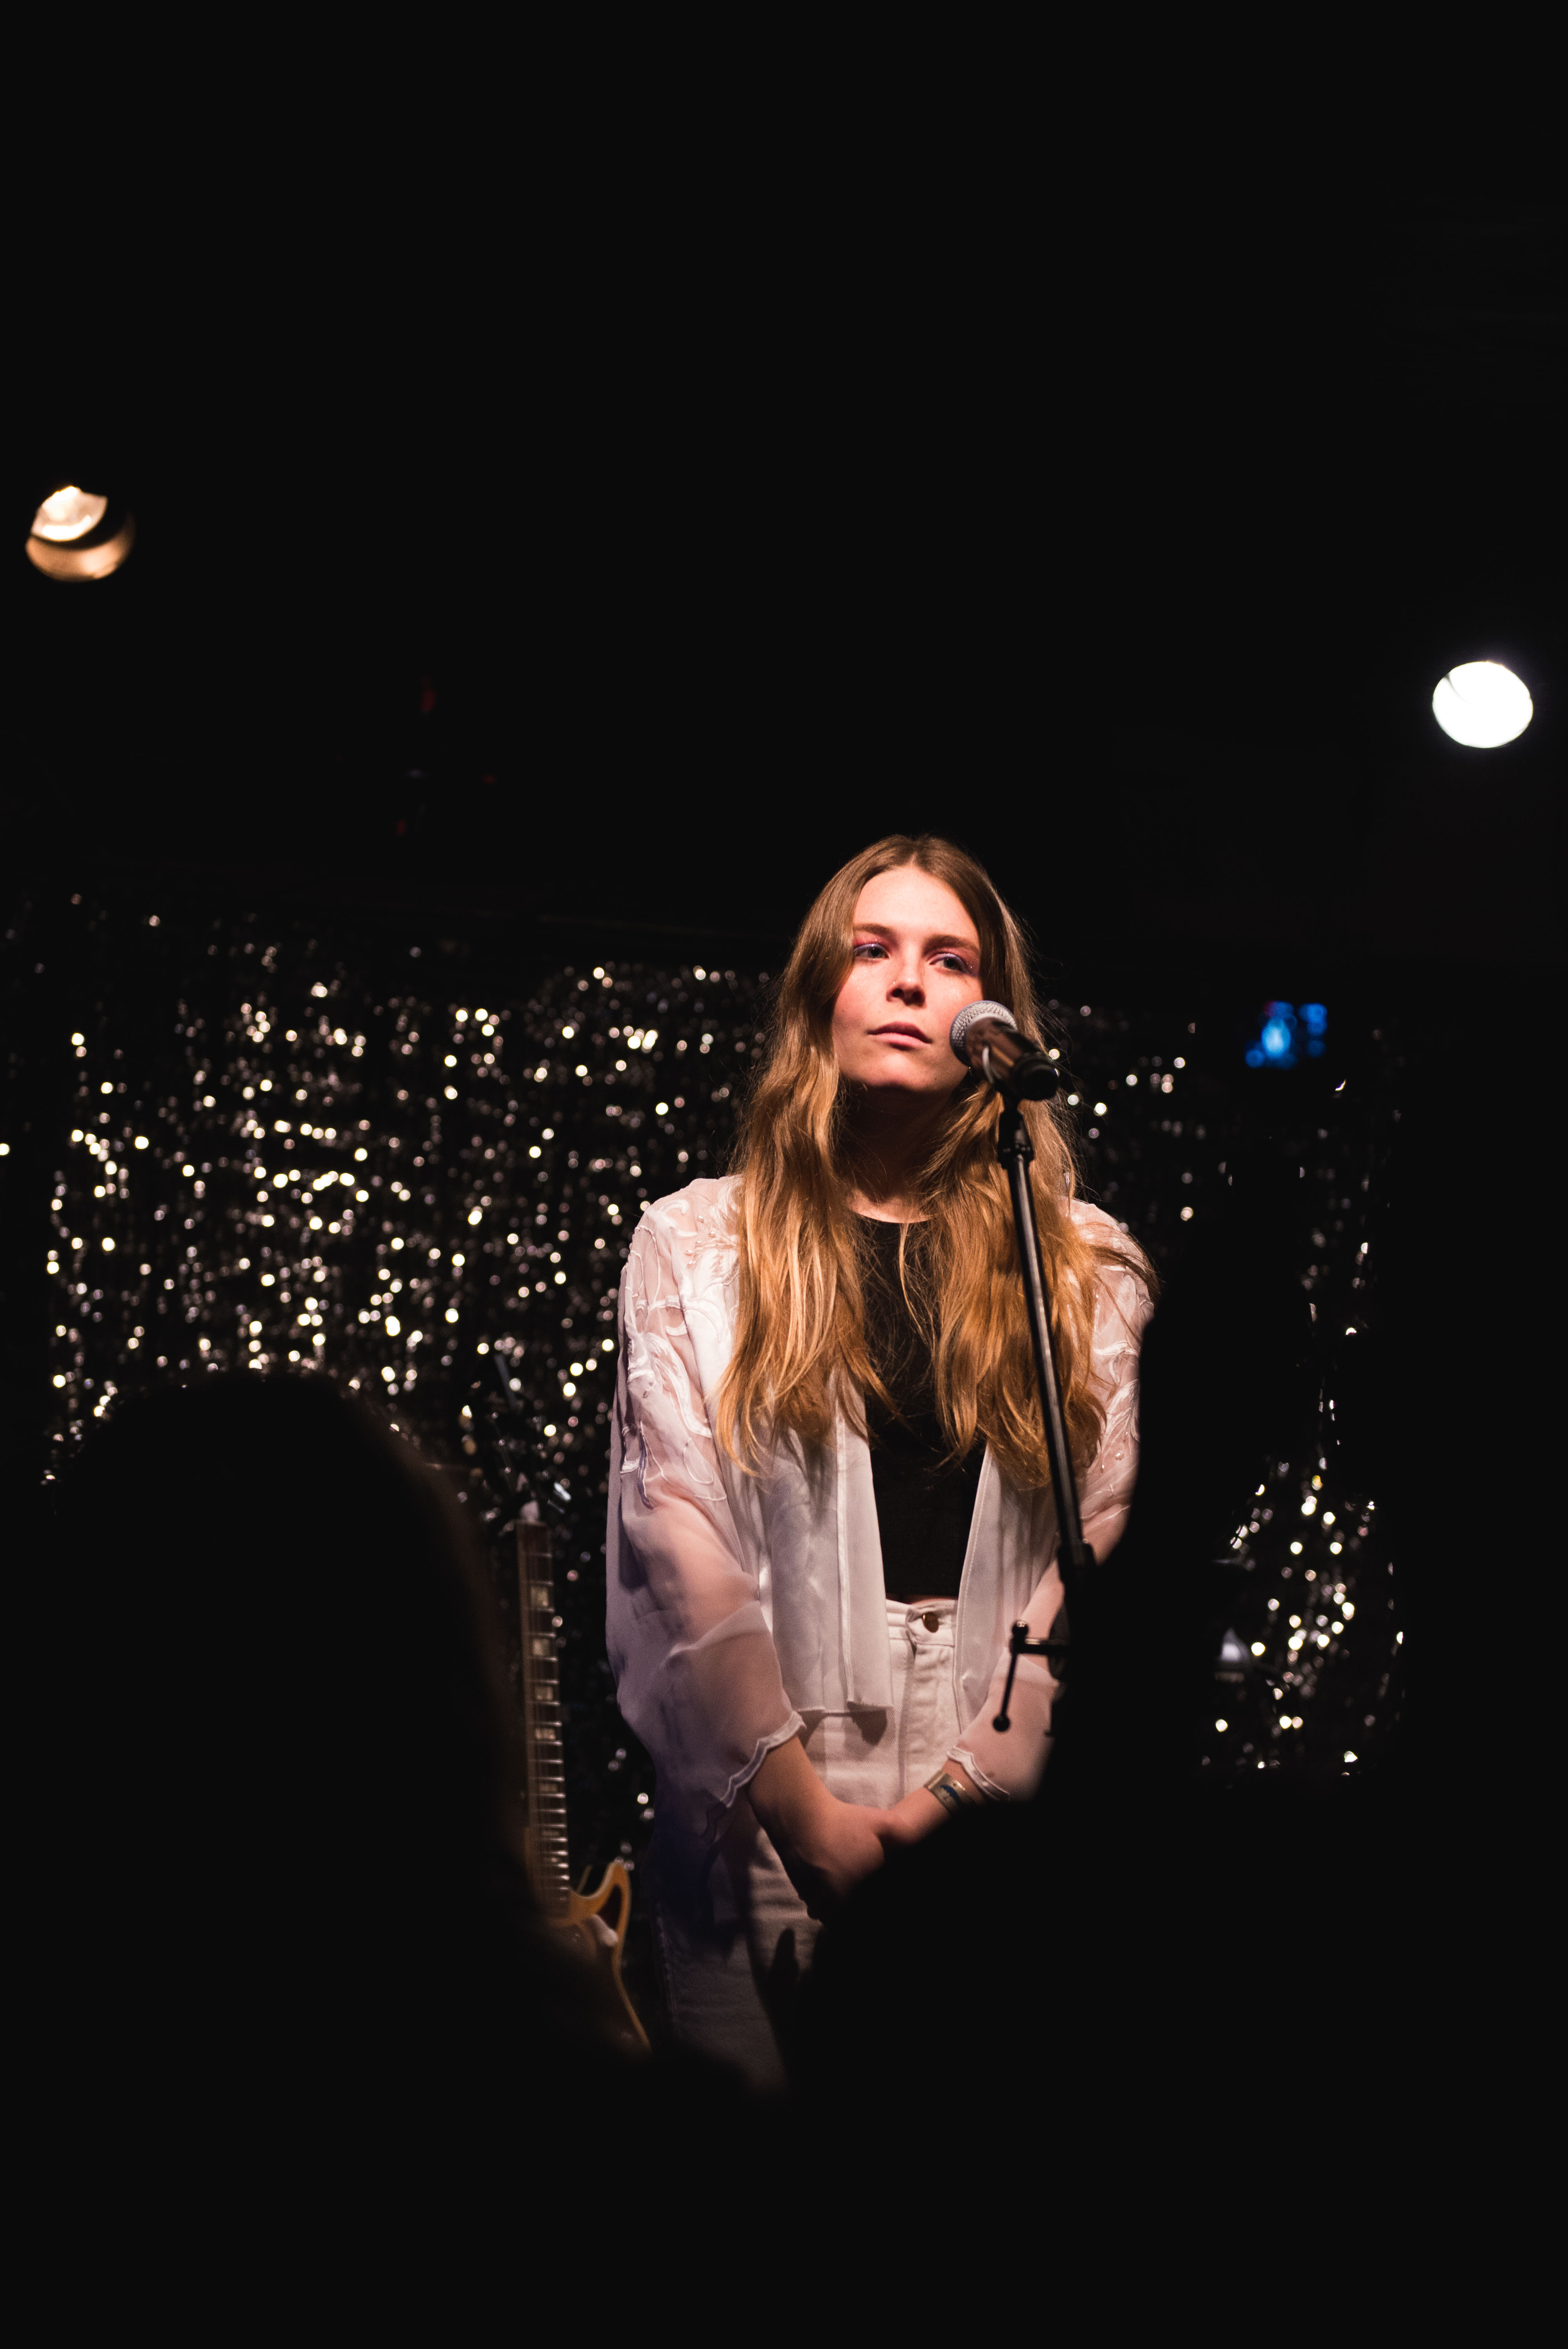 14 Year Old Bmi Chart: Maggie Rogers (singer) - Wikipedia,Chart